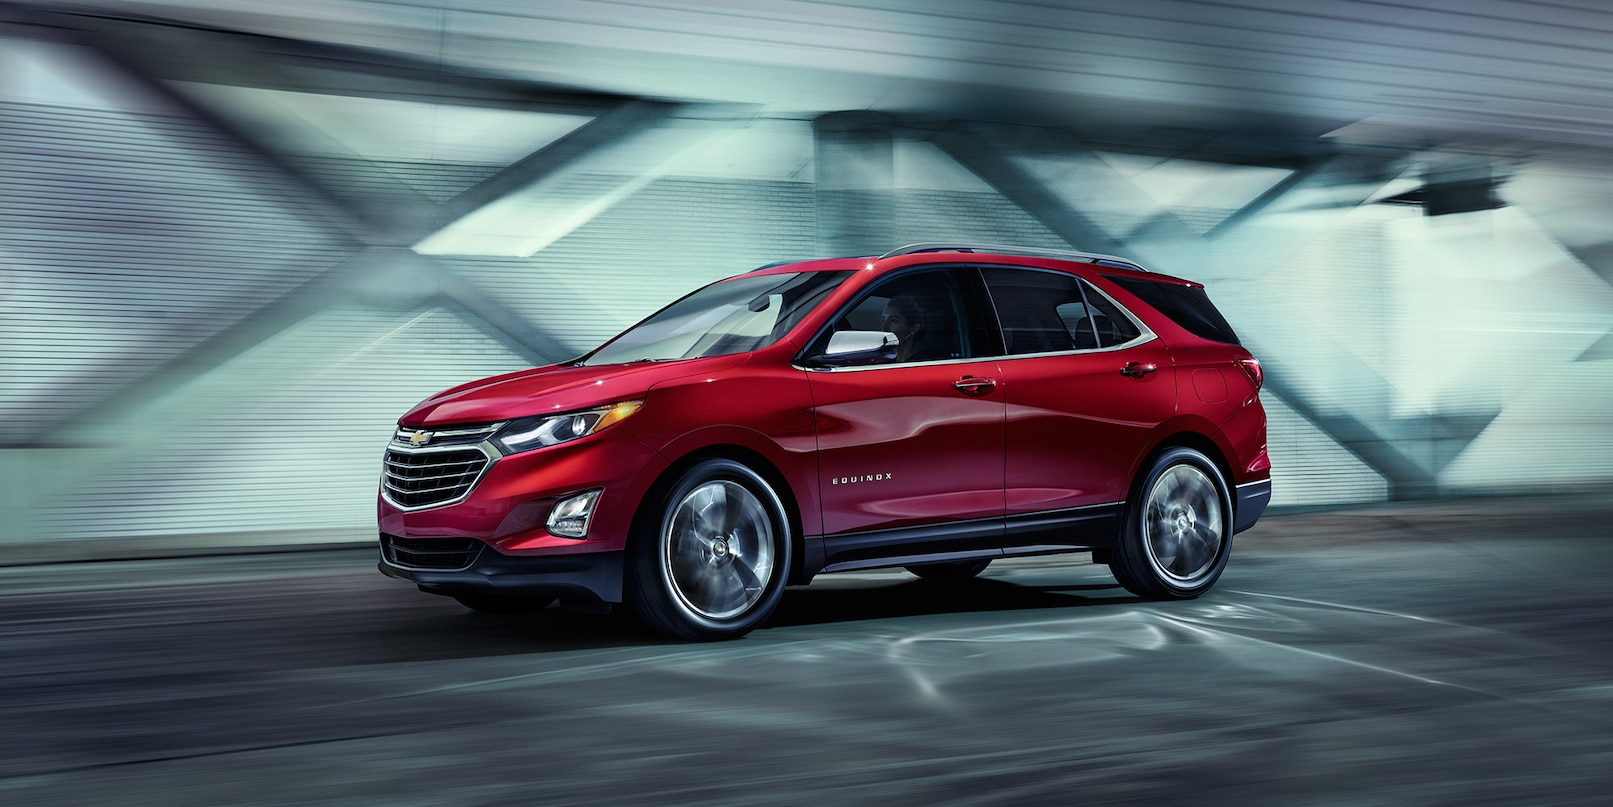 2019 Chevrolet Equinox Leasing near Schererville, IN